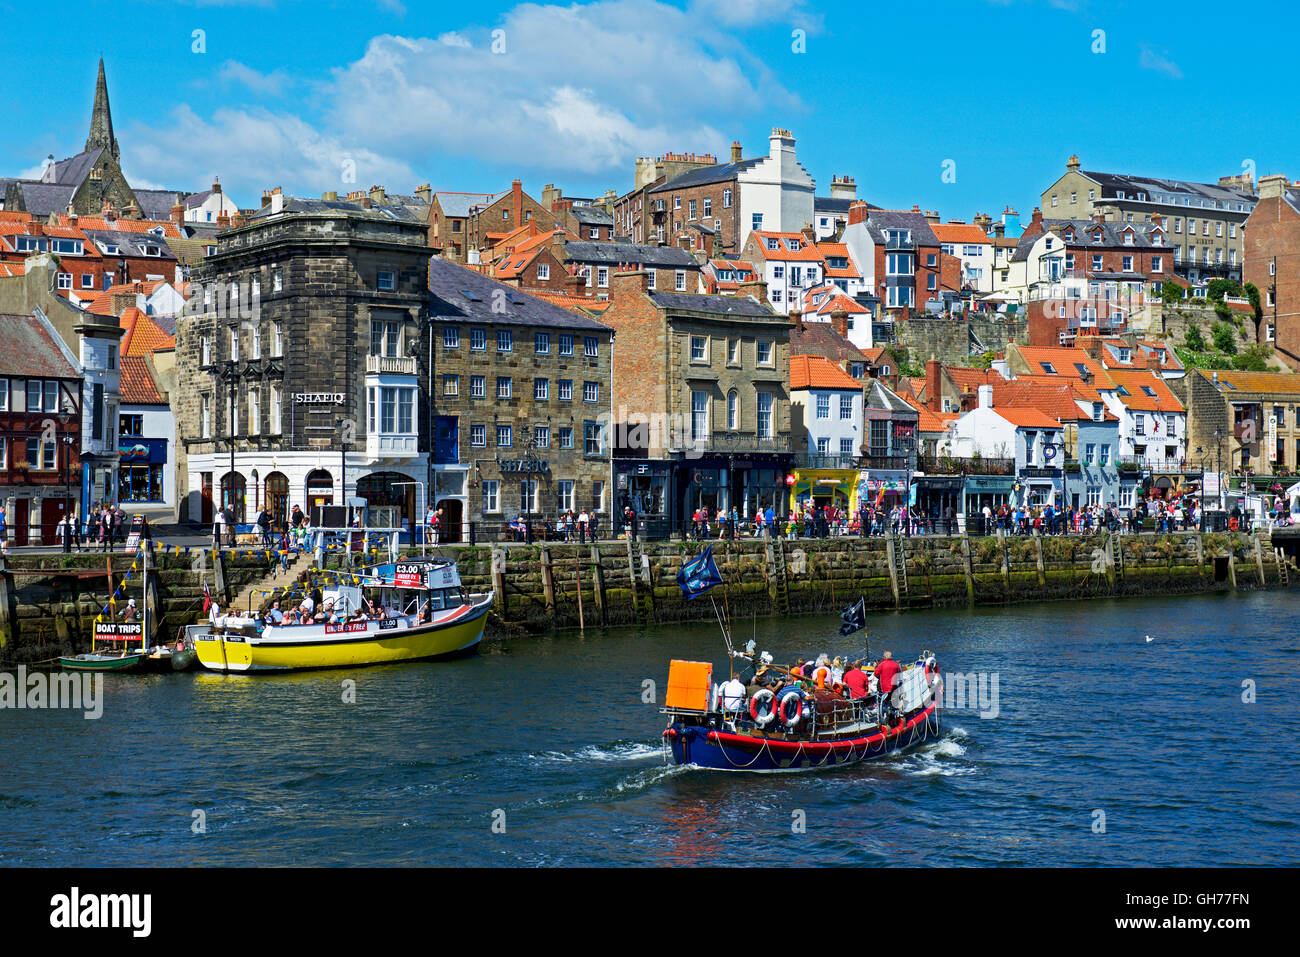 The River Esk in Whitby, North Yorkshire, England UK - Stock Image